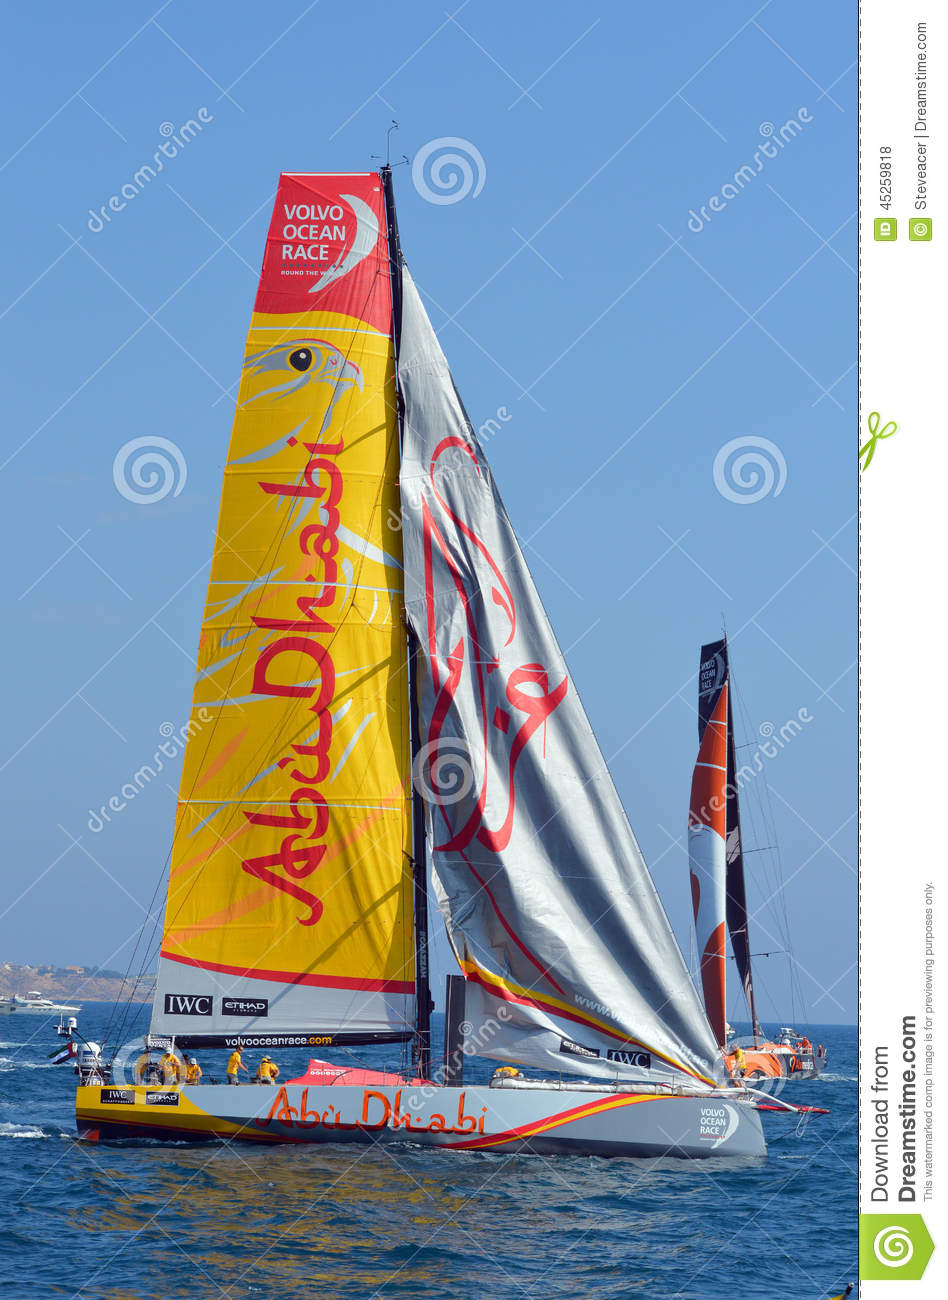 Volvo Ocean Race 2014 - 2015 Abu Dhabi Editorial Stock Photo - Image